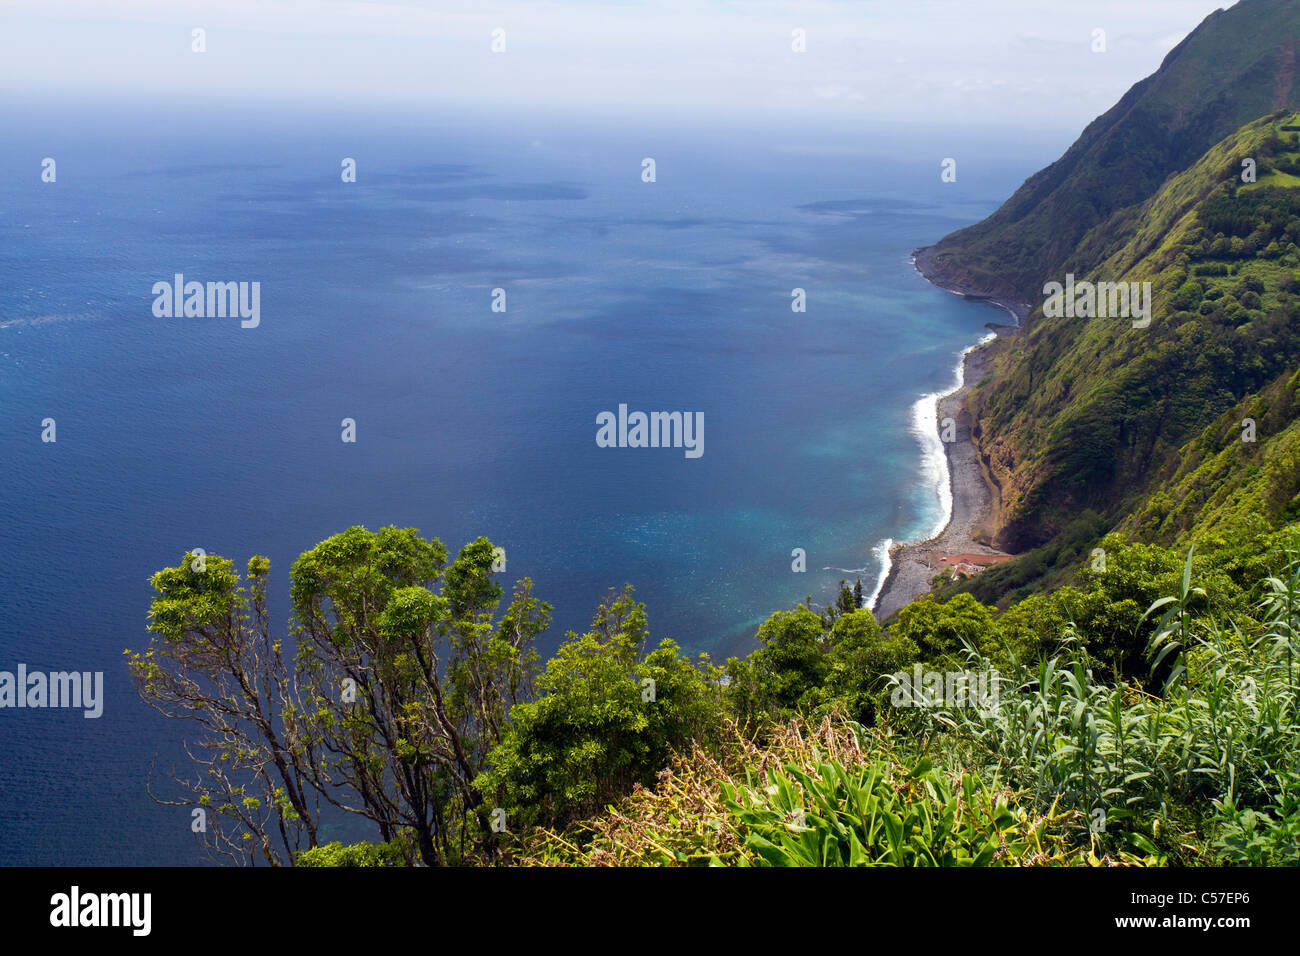 Stunnnig view from the Sossego viewpoint, São Miguel island, Azores, Portugal - Stock Image